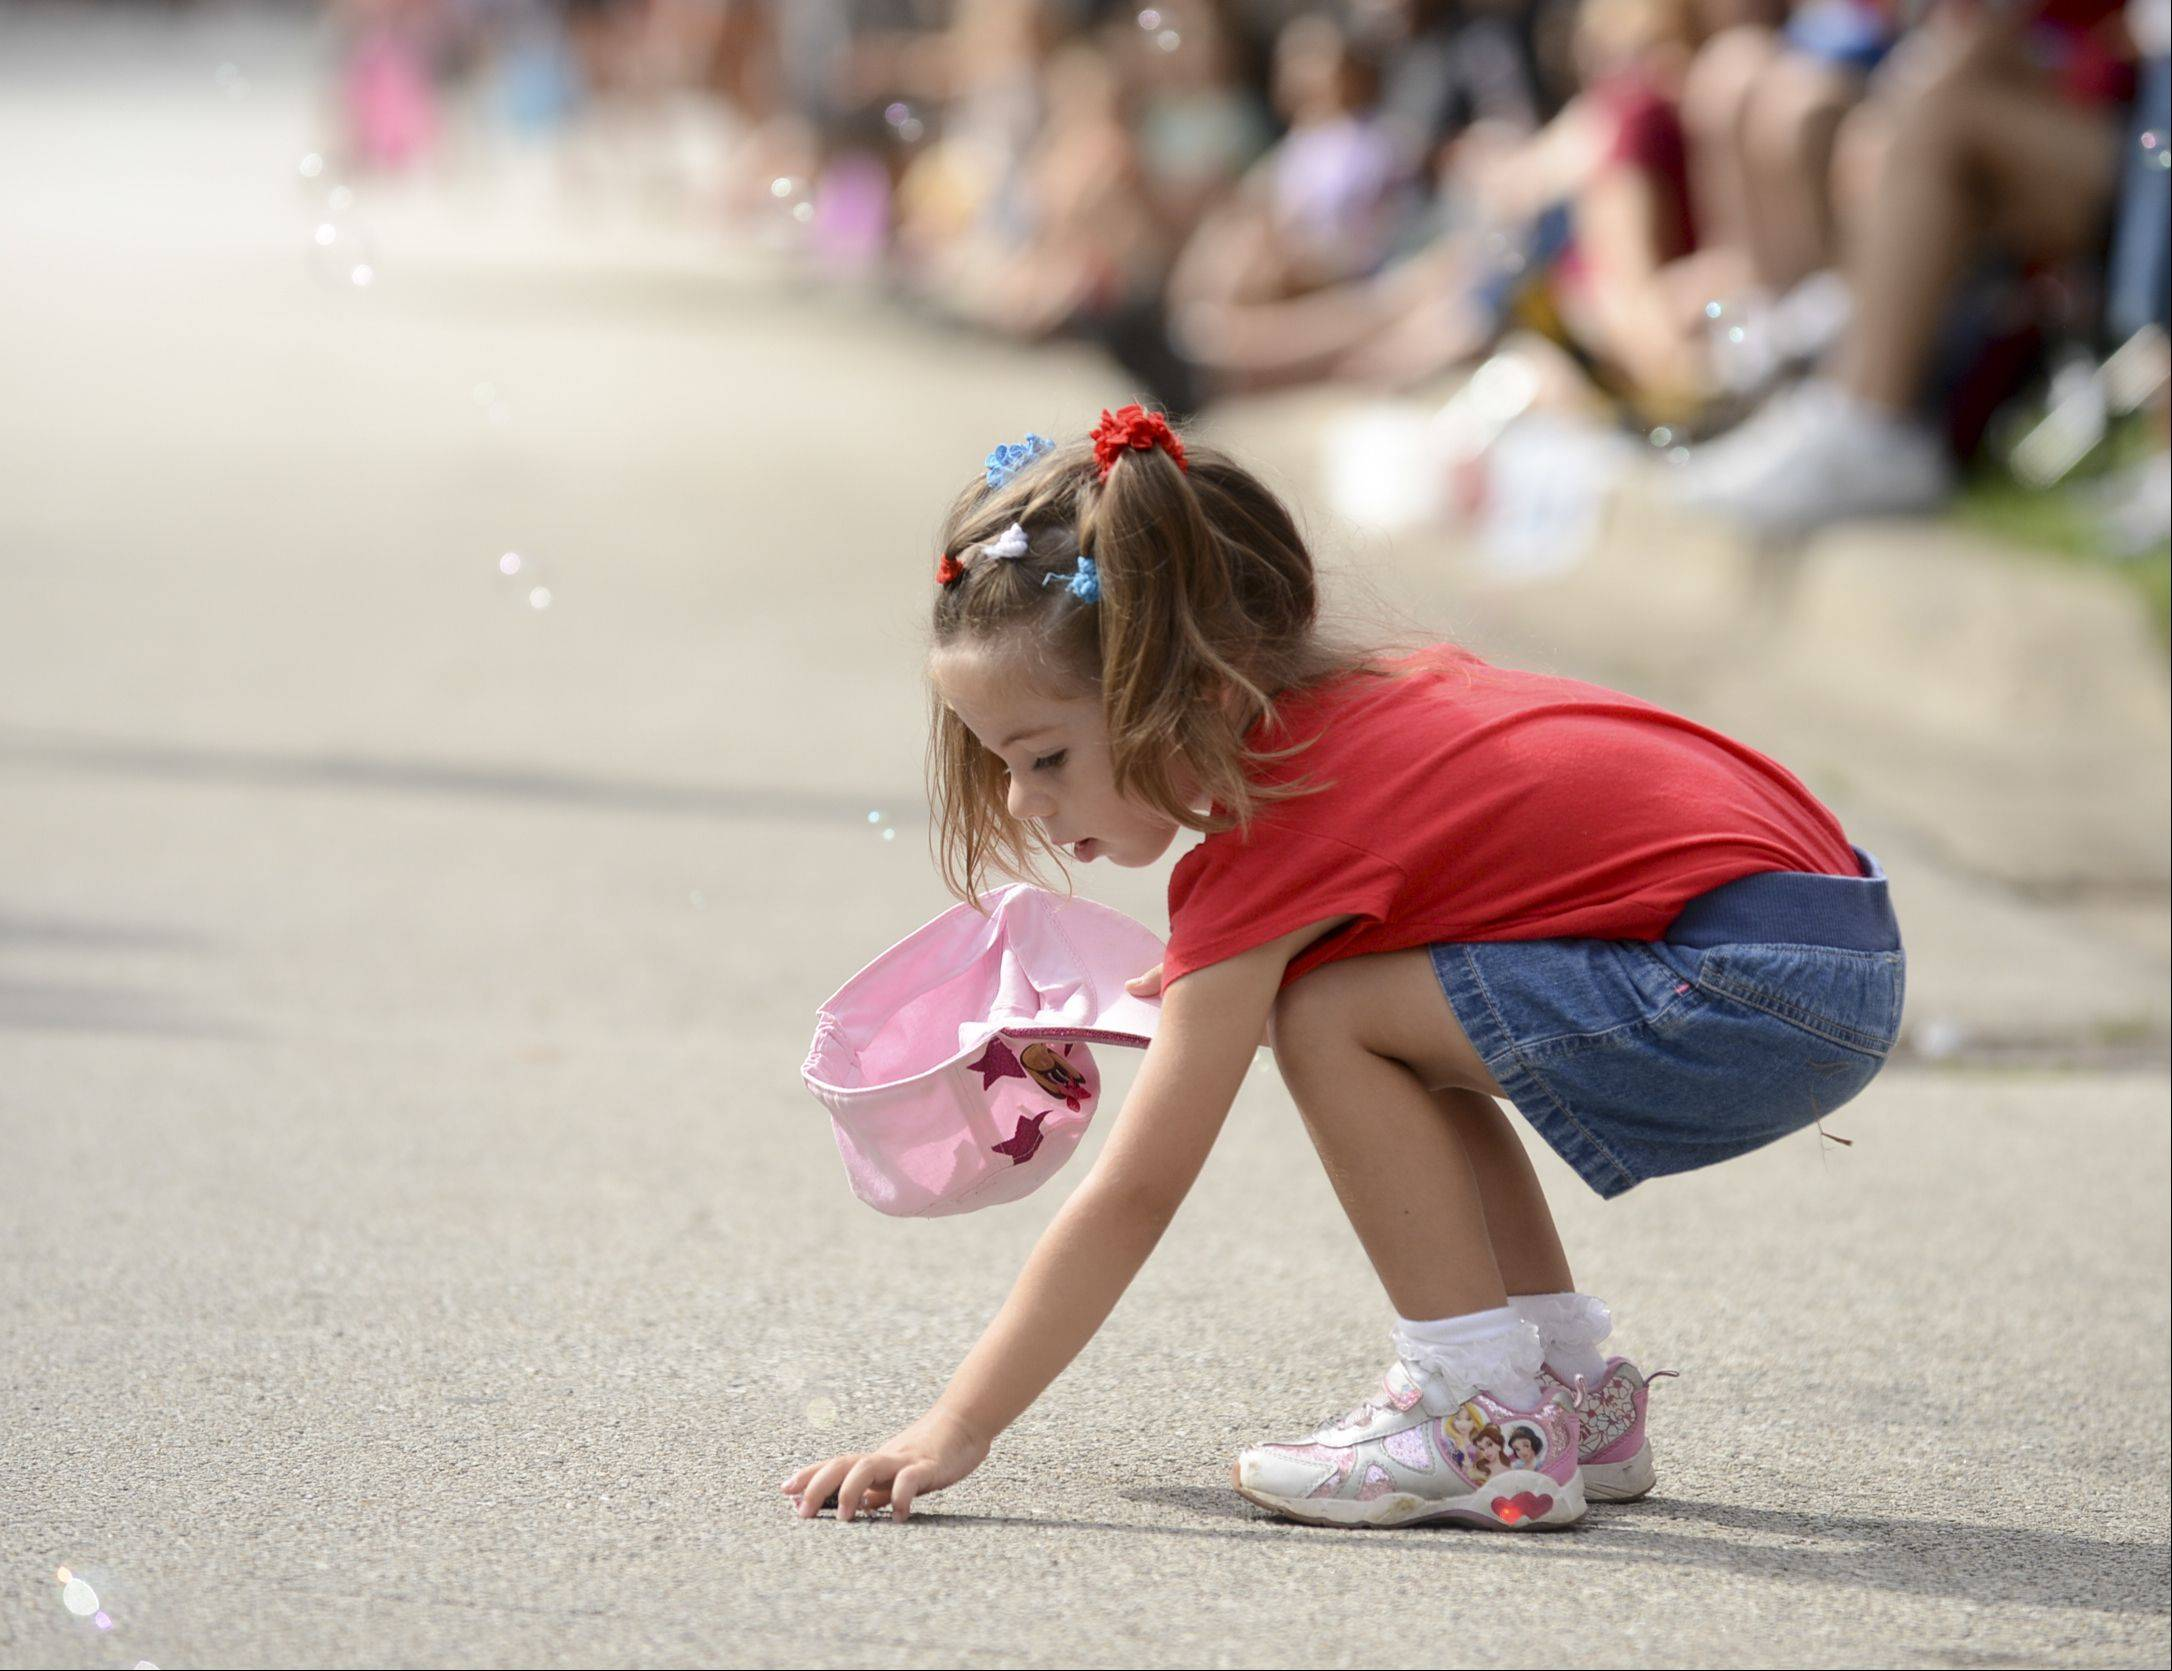 Naperville's Labor Day parade thrills viewers ages 3 to 97